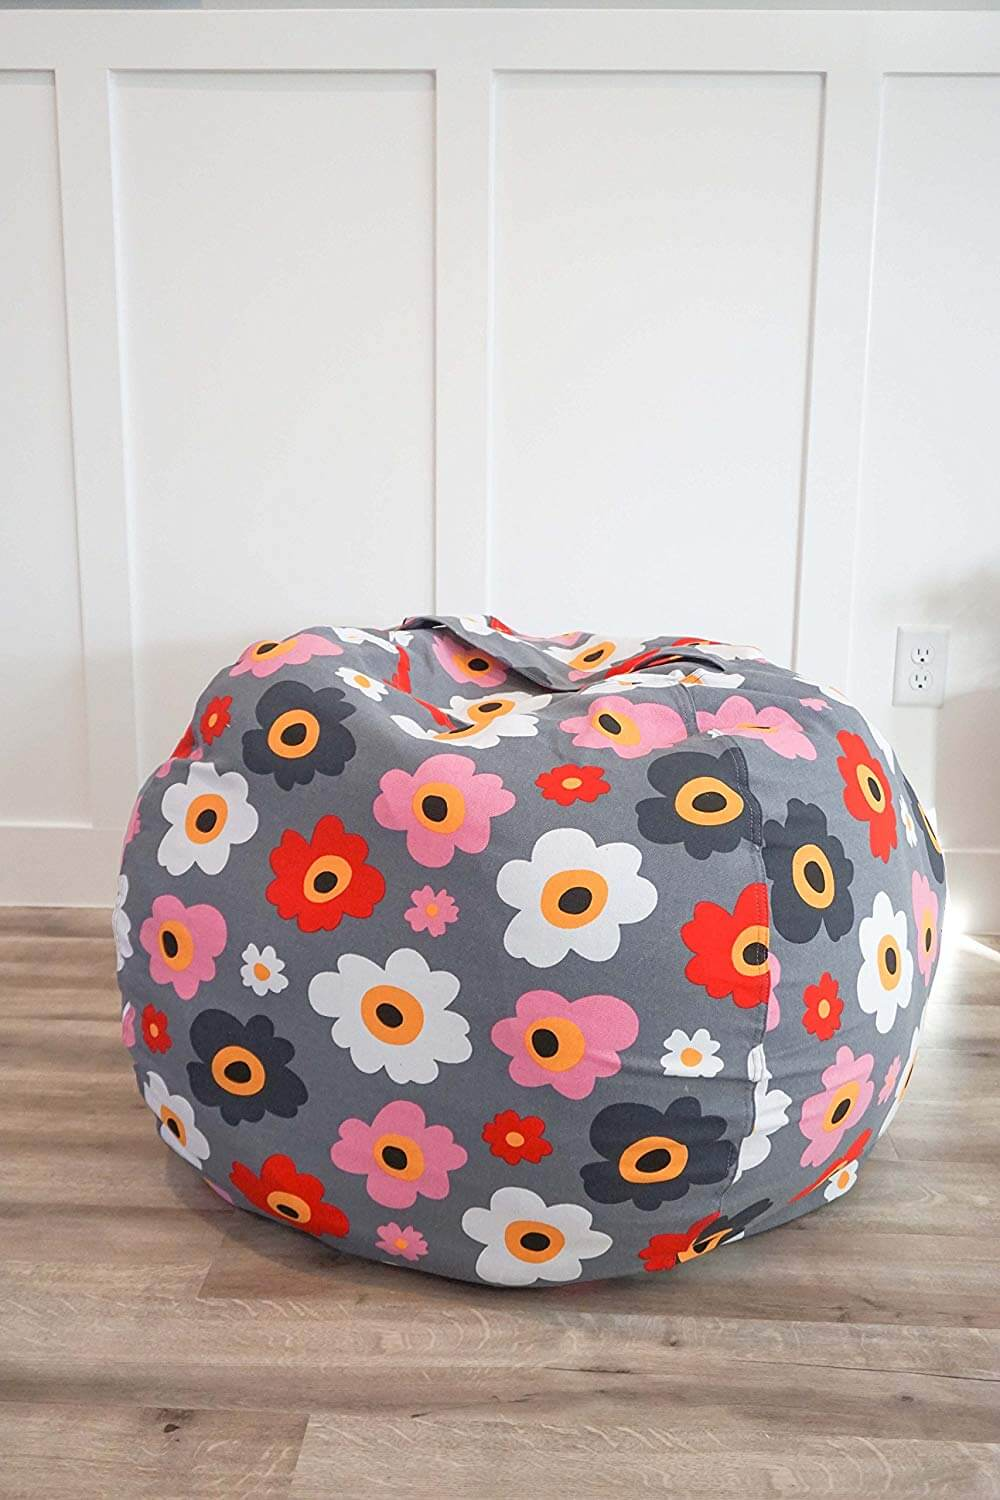 Soothing Company Stuffed Animal Bean Bag Chair Storage